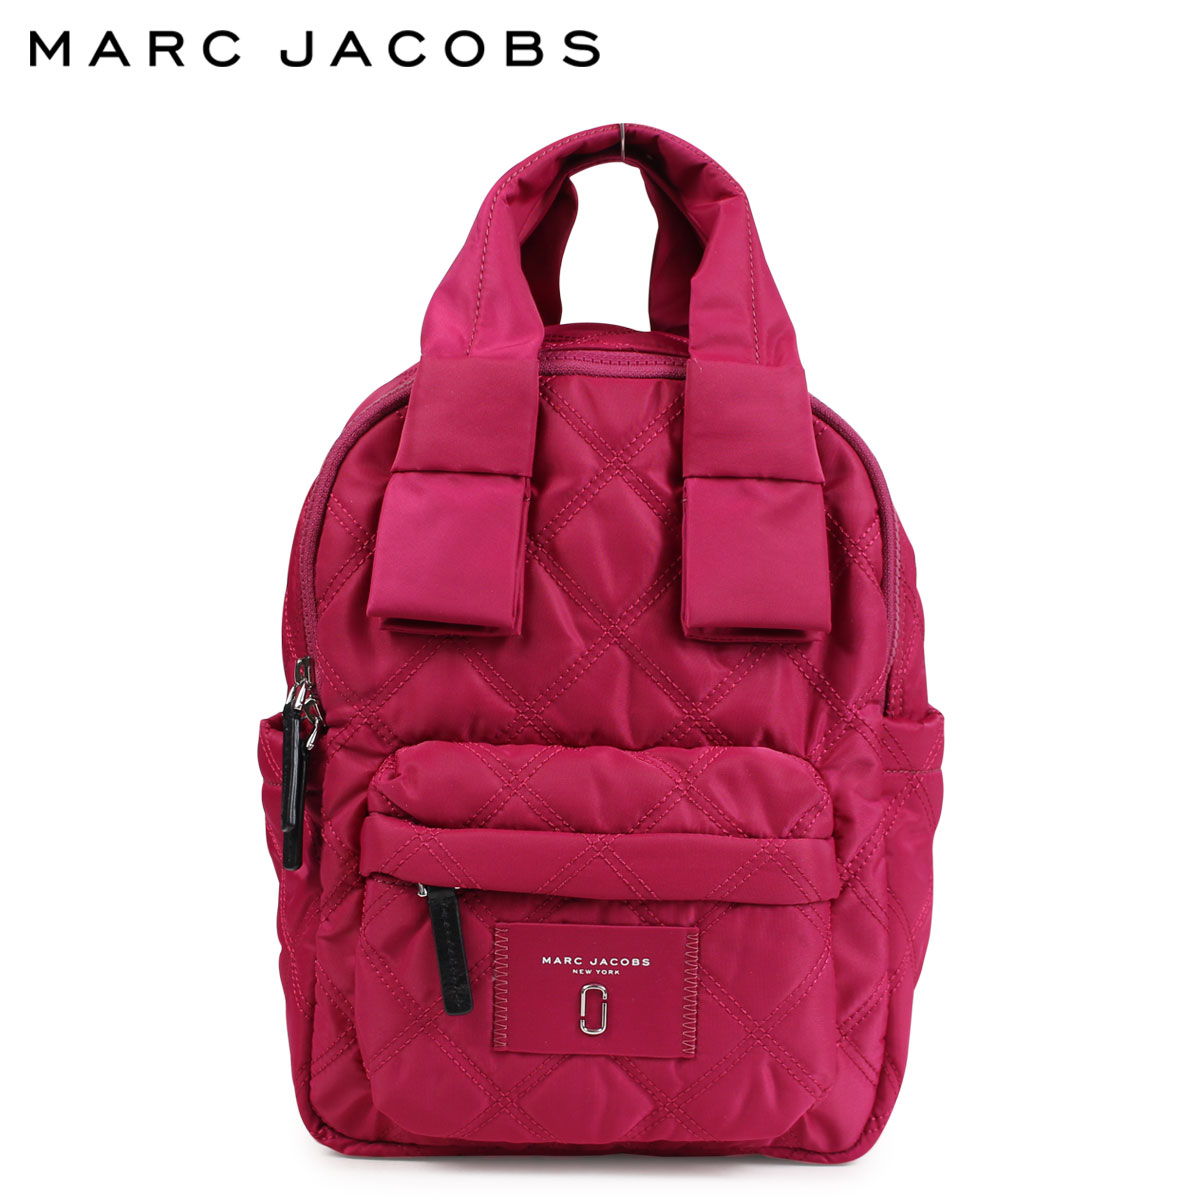 MARC JACOBS QUILTED NYLON SMALL BACKPACK マークジェイコブス リュック バッグ バックパック レディース ラズベリー M0011201